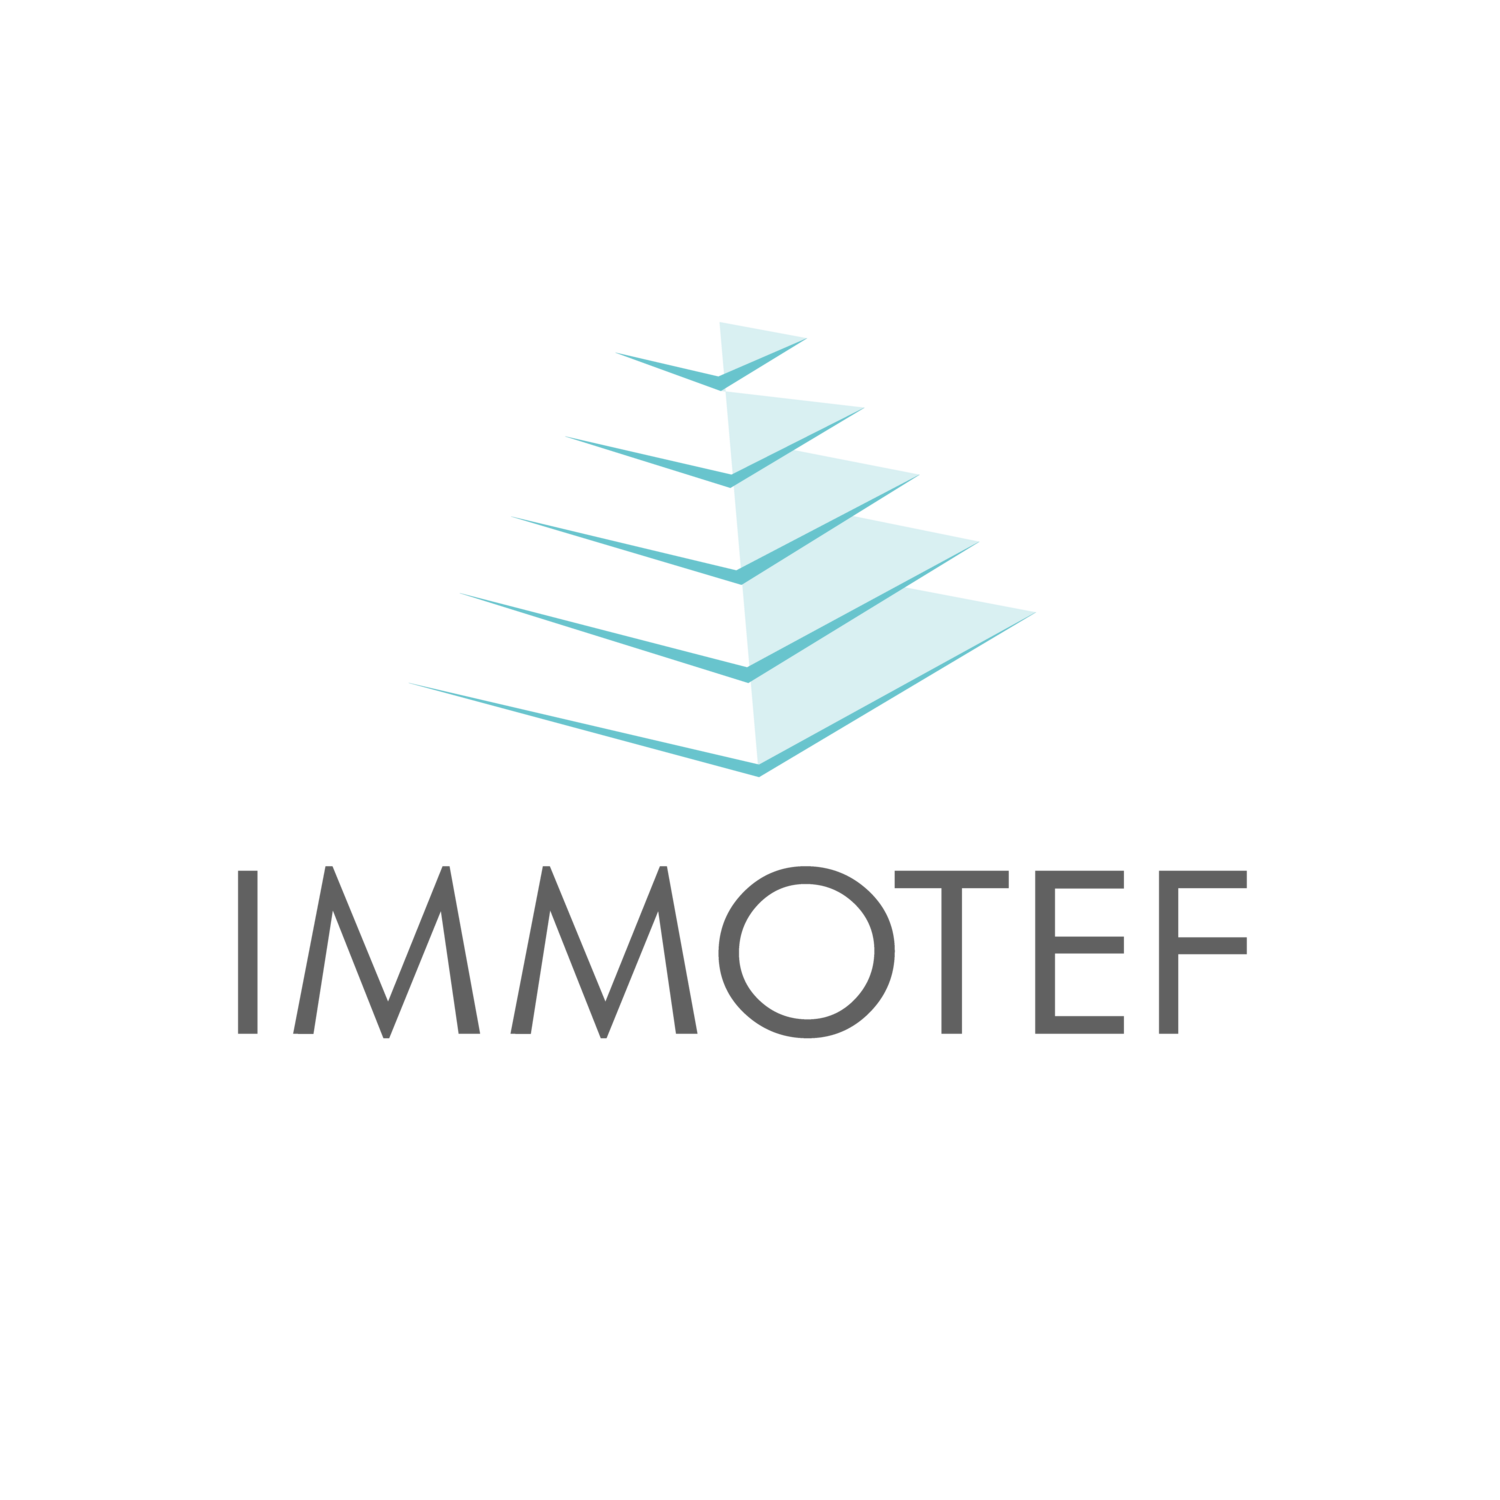 Immotef - Building & Engineering